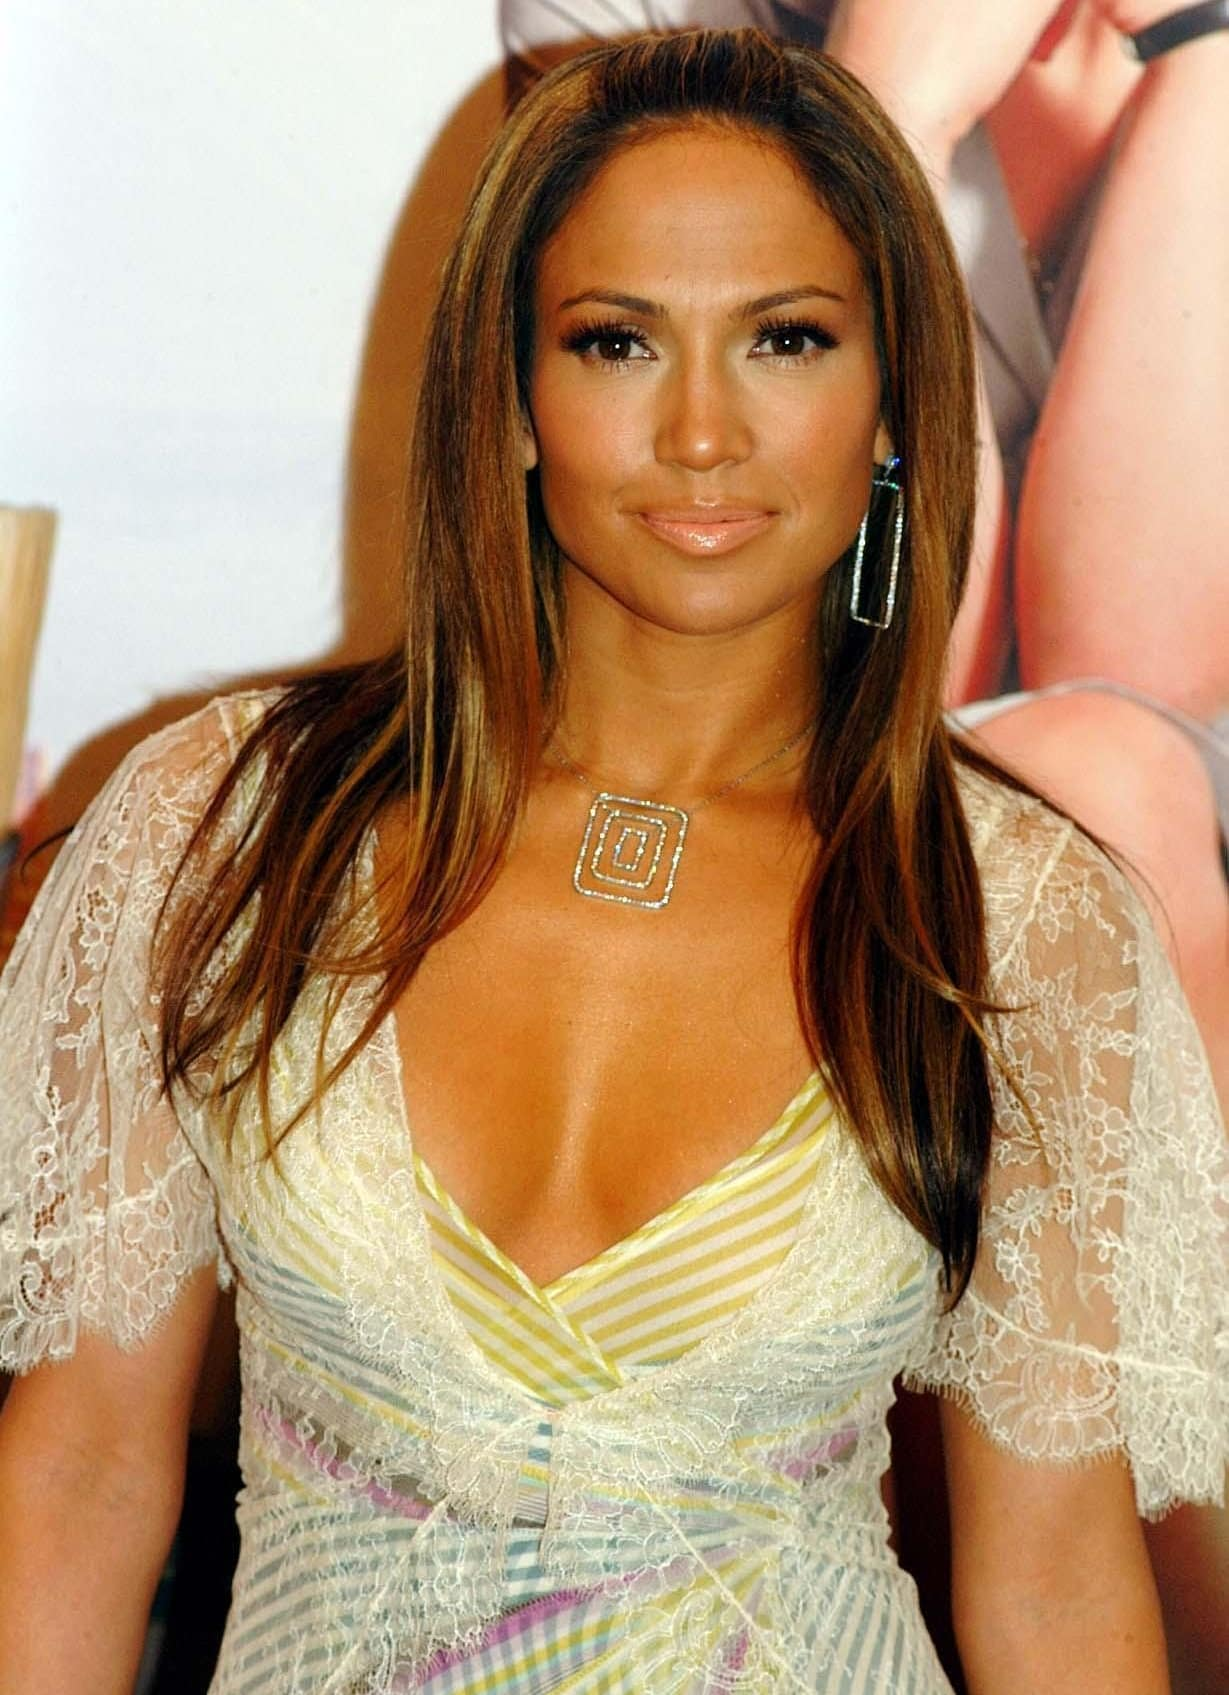 Jennifer Lopez at a photocall for her new movie Maid in Manhattan